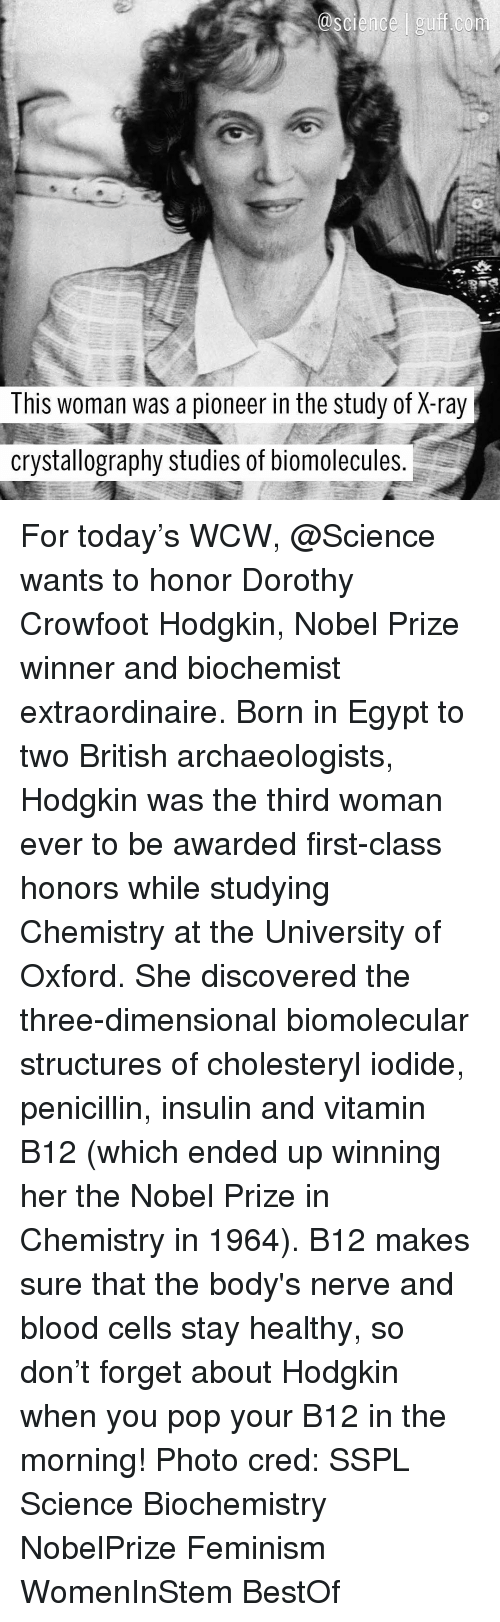 Femination: This woman was a pioneer in the study of X-ray  crystallography studies of biomolecules For today's WCW, @Science wants to honor Dorothy Crowfoot Hodgkin, Nobel Prize winner and biochemist extraordinaire. Born in Egypt to two British archaeologists, Hodgkin was the third woman ever to be awarded first-class honors while studying Chemistry at the University of Oxford. She discovered the three-dimensional biomolecular structures of cholesteryl iodide, penicillin, insulin and vitamin B12 (which ended up winning her the Nobel Prize in Chemistry in 1964). B12 makes sure that the body's nerve and blood cells stay healthy, so don't forget about Hodgkin when you pop your B12 in the morning! Photo cred: SSPL Science Biochemistry NobelPrize Feminism WomenInStem BestOf